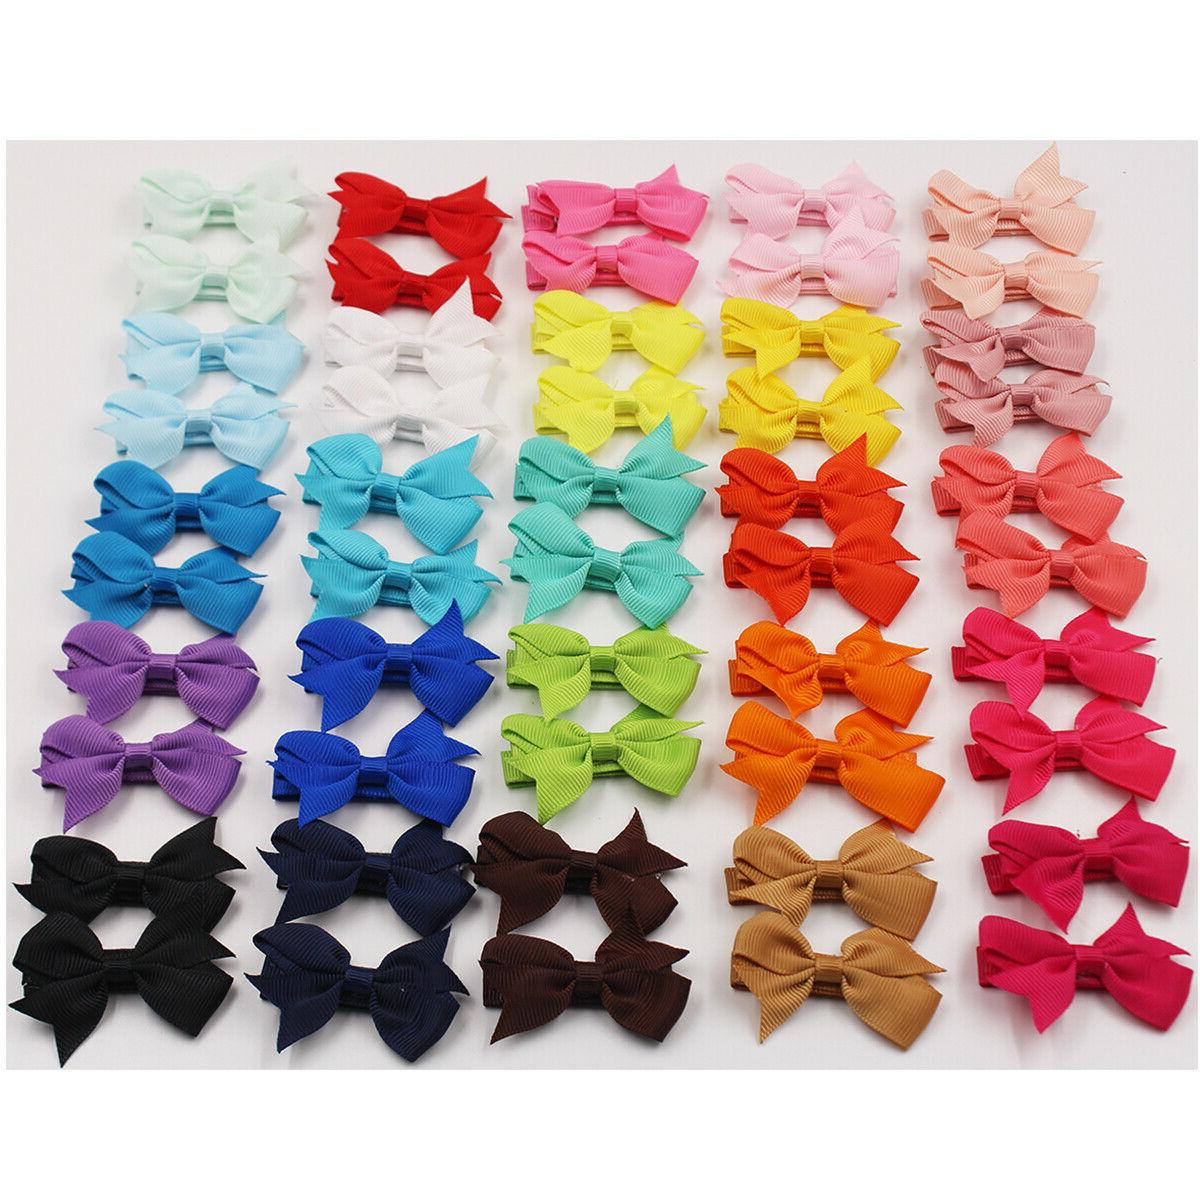 50Lot 2inch Tiny Ribbon Bows Alligator Hair Clips Fully Lined